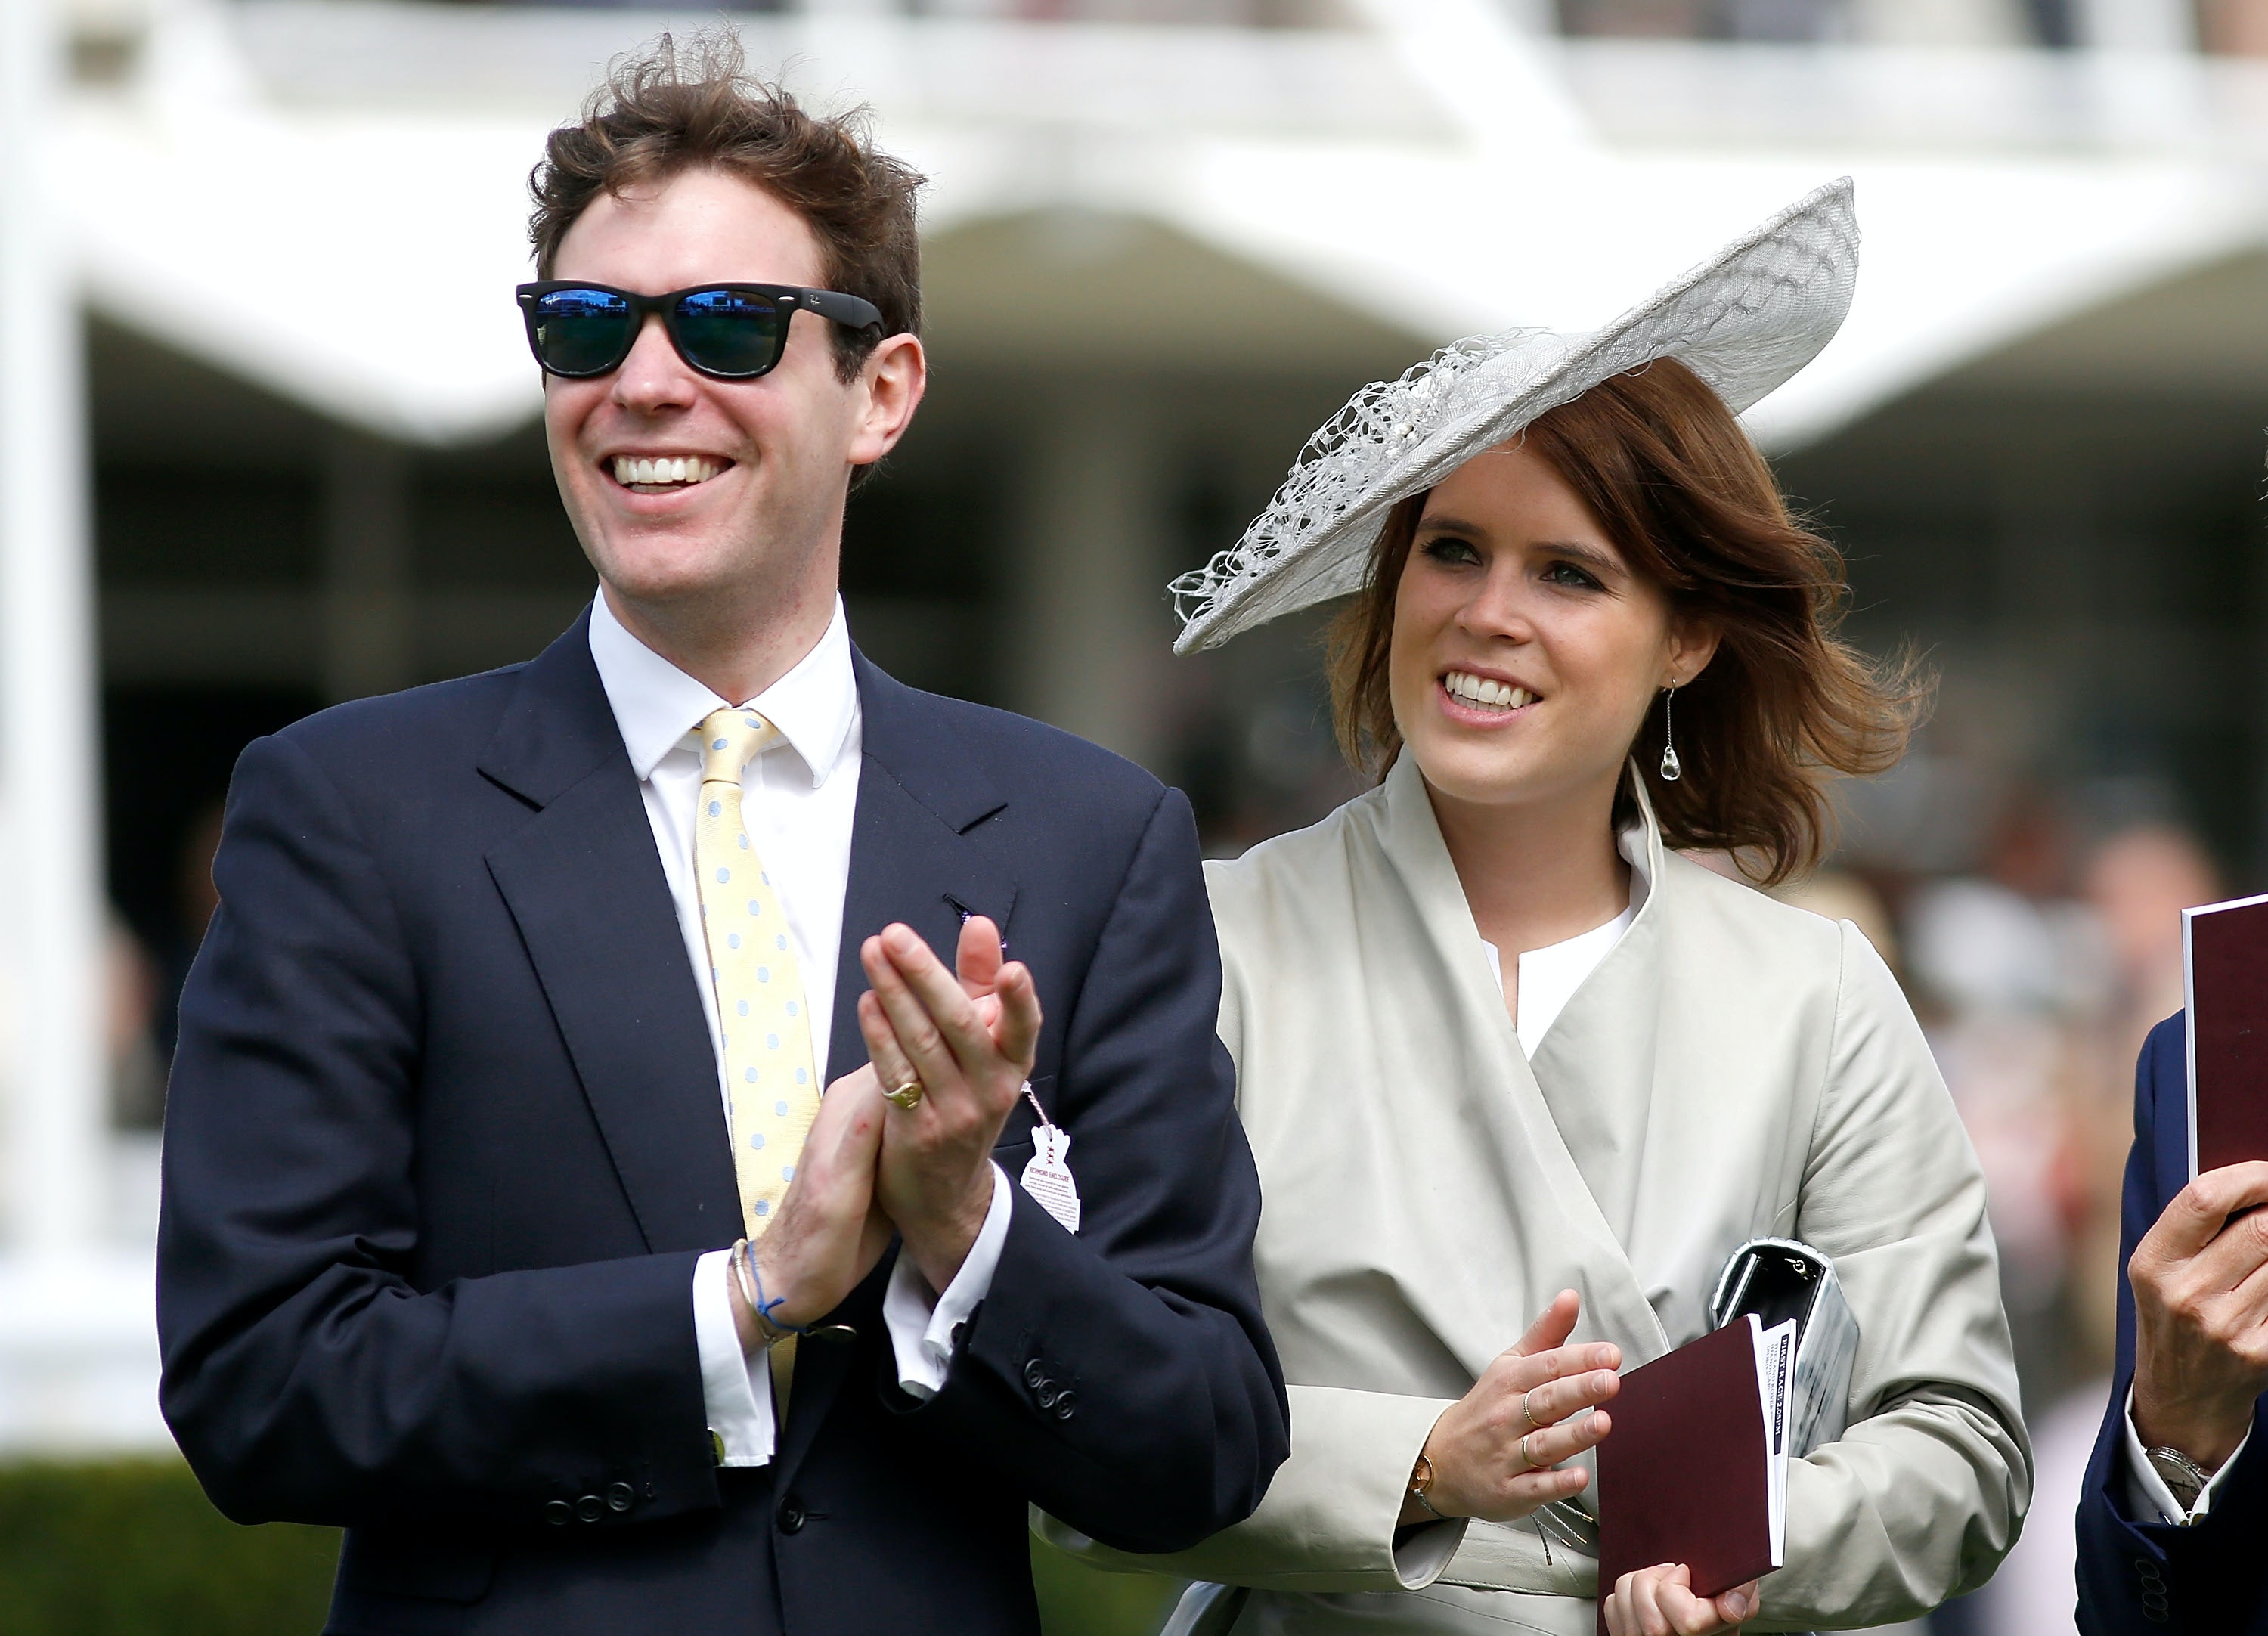 Royal Wedding 2018 Date.When Is Princess Eugenie Getting Married This Royal Wedding Date